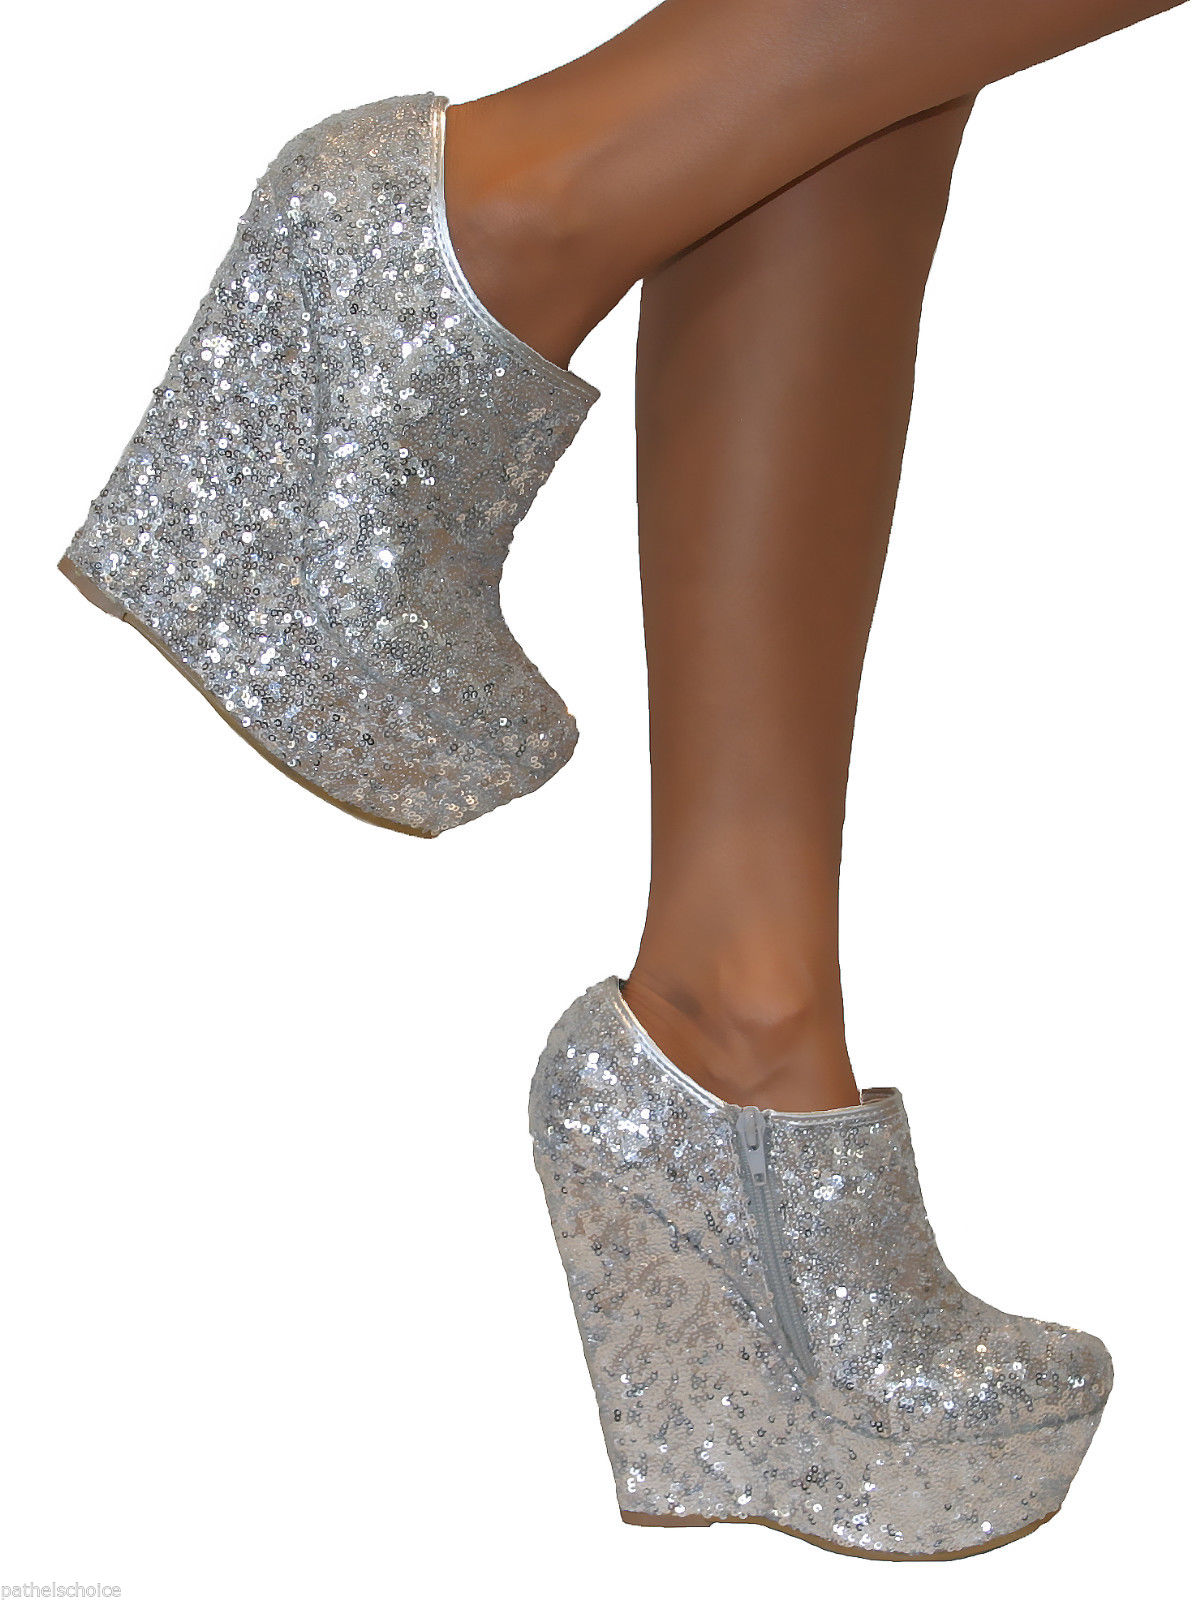 9bde79b3fd66a Shoppable tips. Best tips. advertising. 17£. Not mentioned. ebay.co.uk. WOMENS  SILVER GOLD PLATFORM GLITTER SPARKLY HIGH WEDGES ...